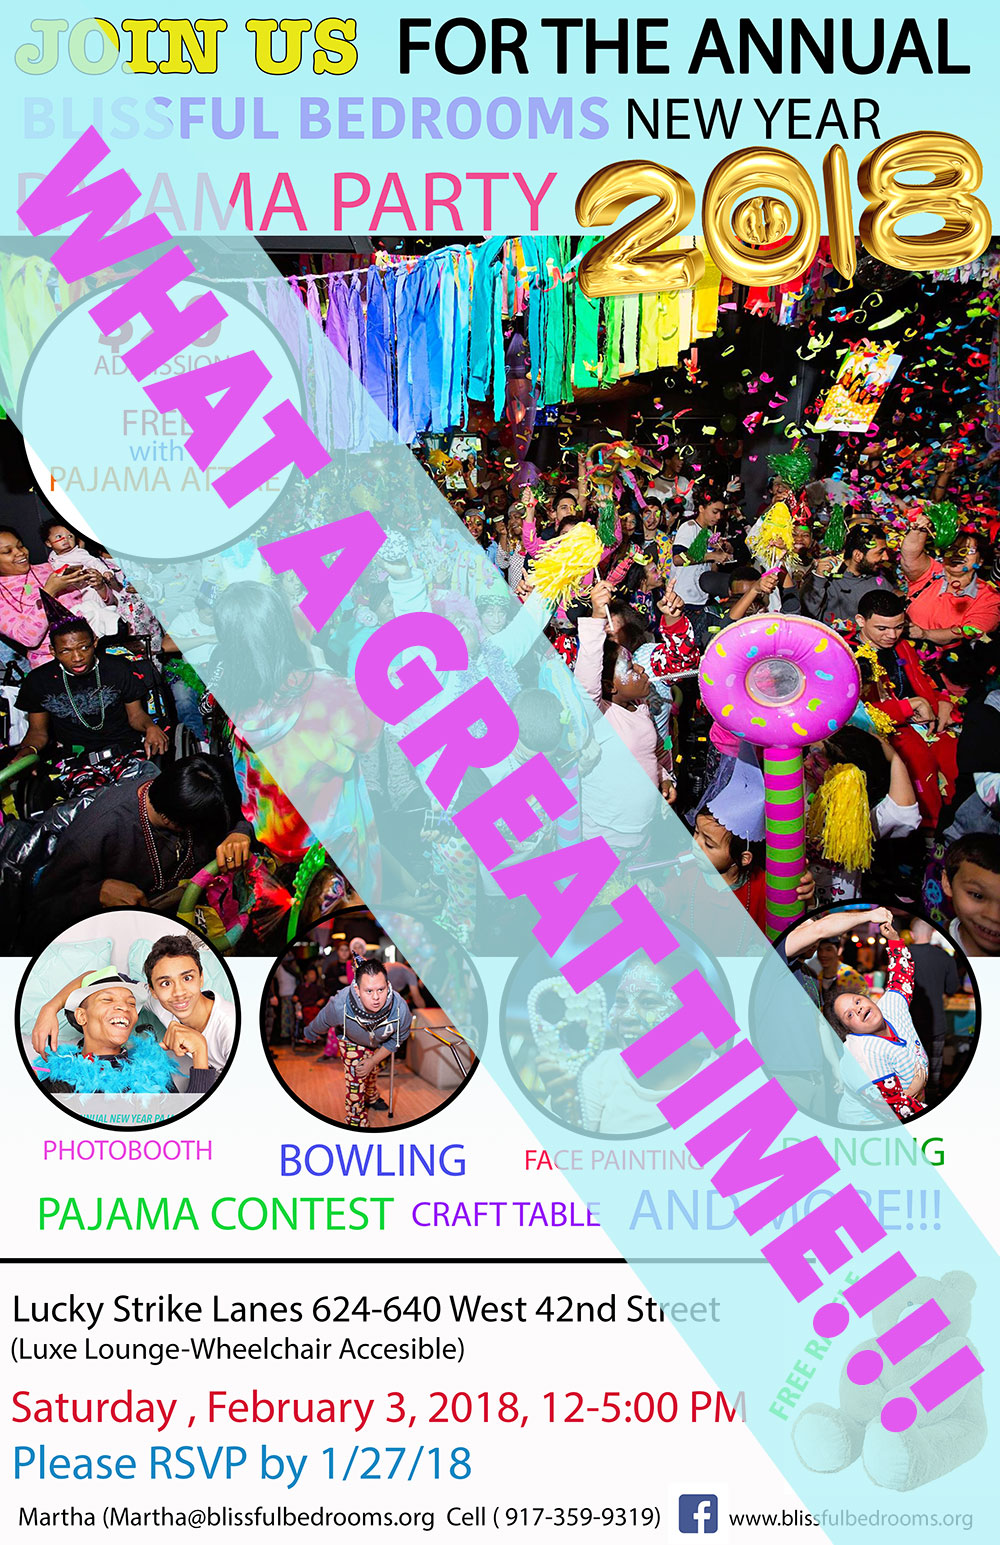 BB-NEW-YEAR-PAJAMA-FLYER-2018-AFTER